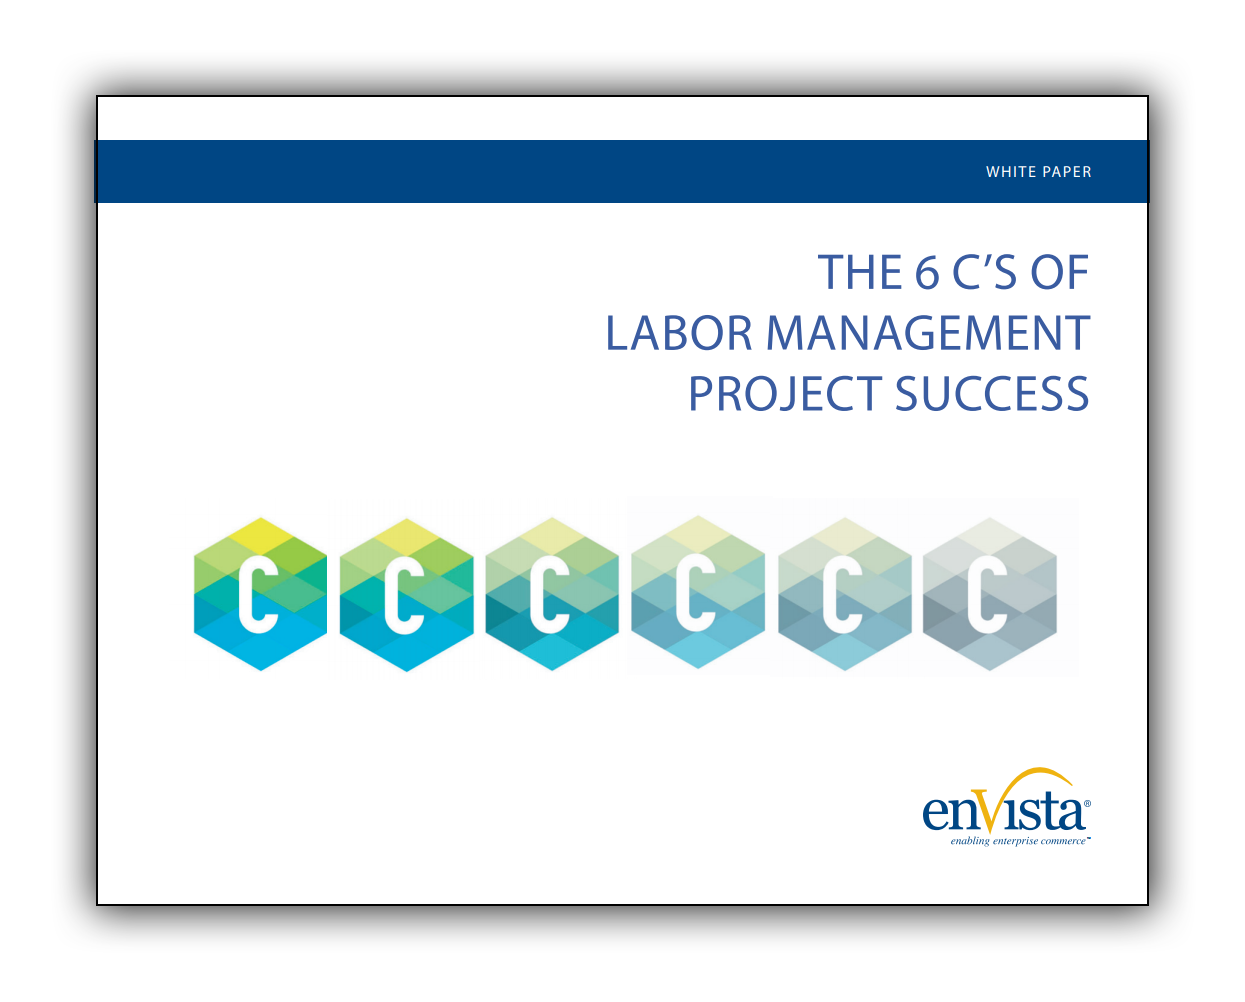 Image_the-6-Cs-of-labor-management-project-success.png